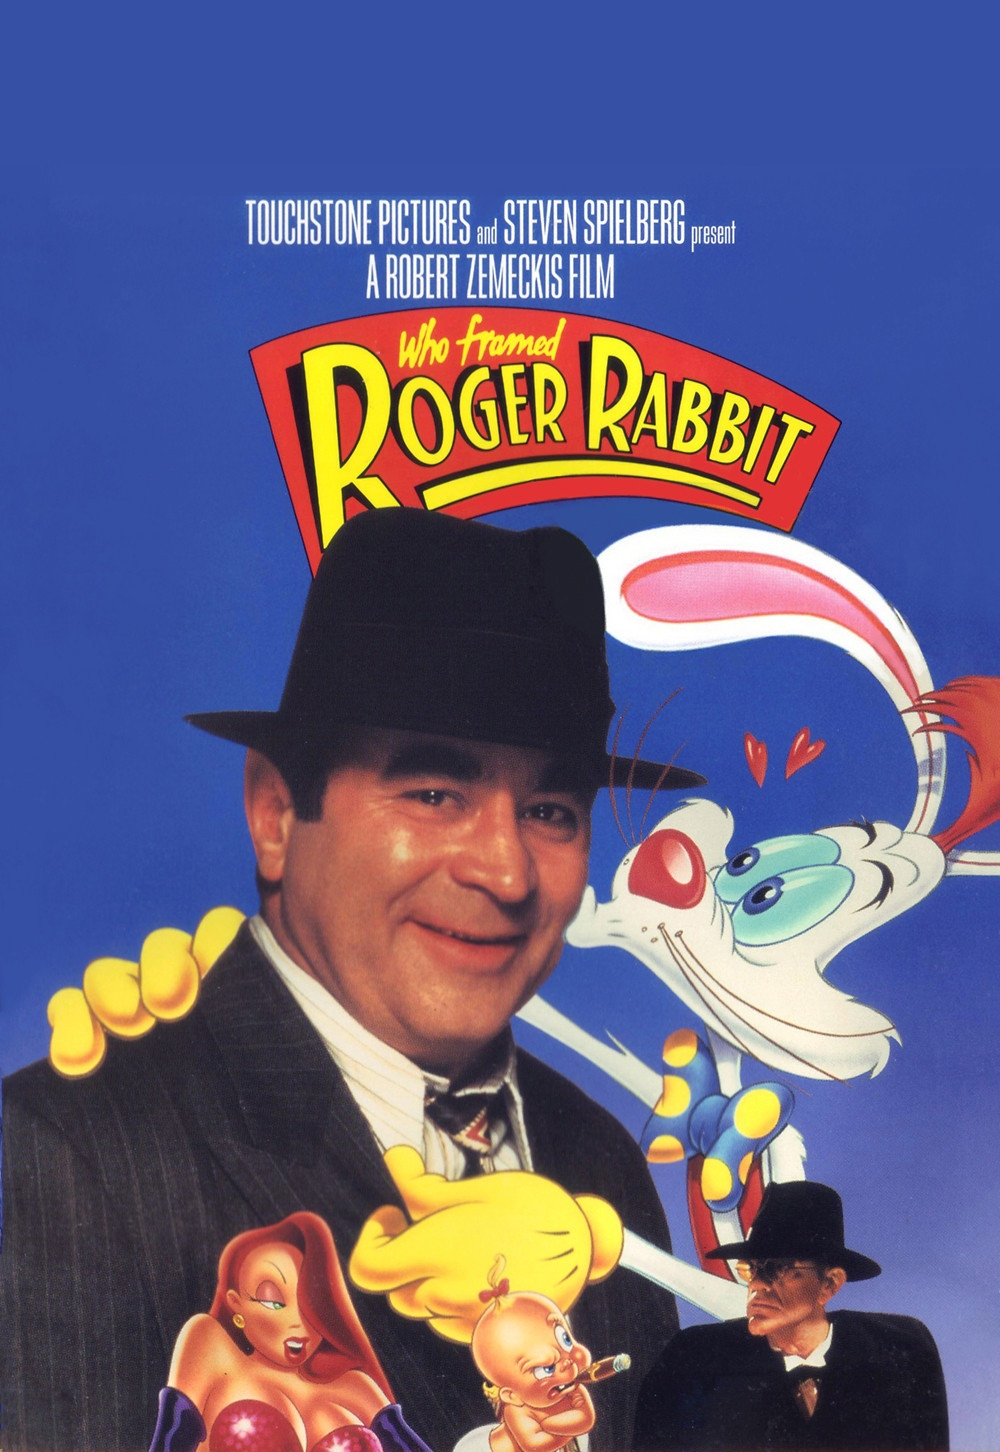 who framed roger rabbit movie poster by expofever d7tk5akjpg - Who Framed Roger Rabbit Full Movie